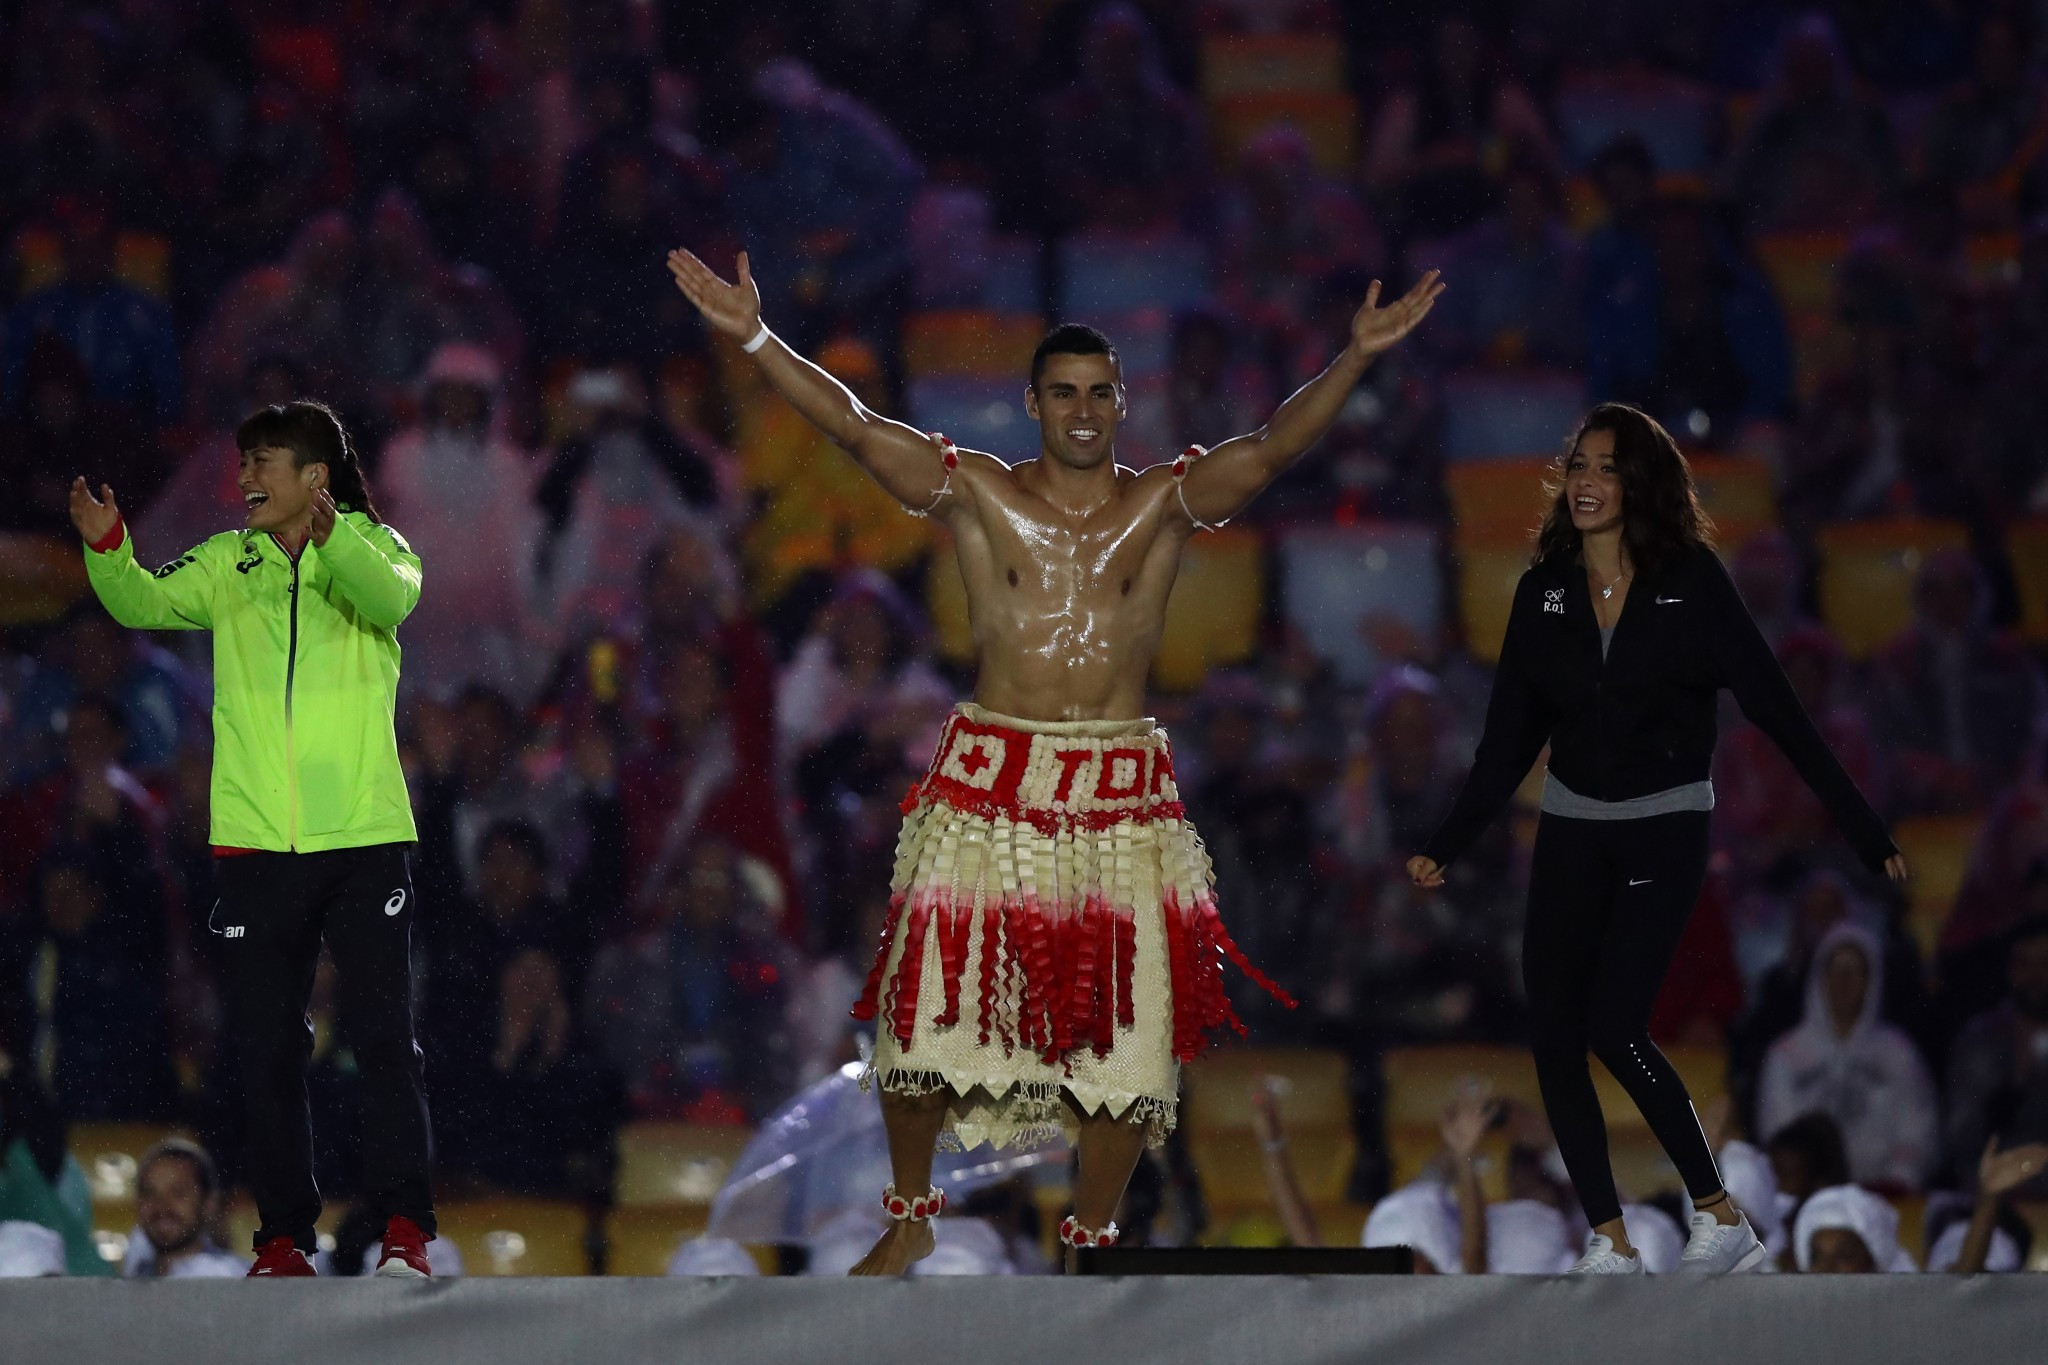 Pita Taufatofua became a viral sensation at Rio 2016 ©Getty Images